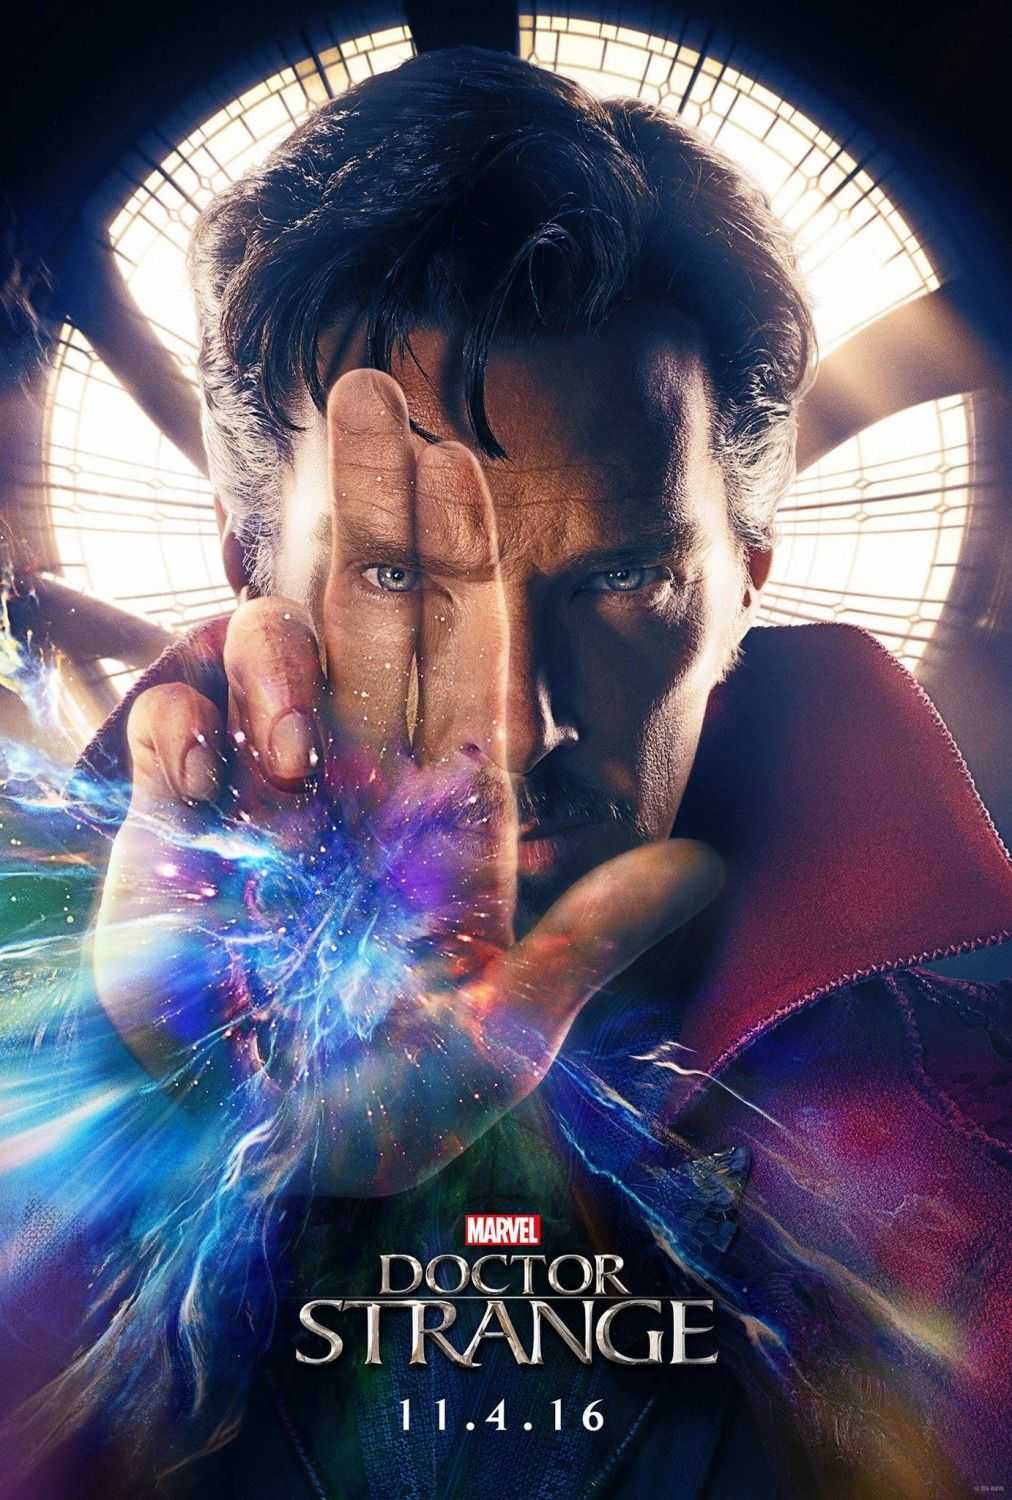 Pin by 0 on F I L M in 2018 | Pinterest | Doctor Strange, Marvel and ...